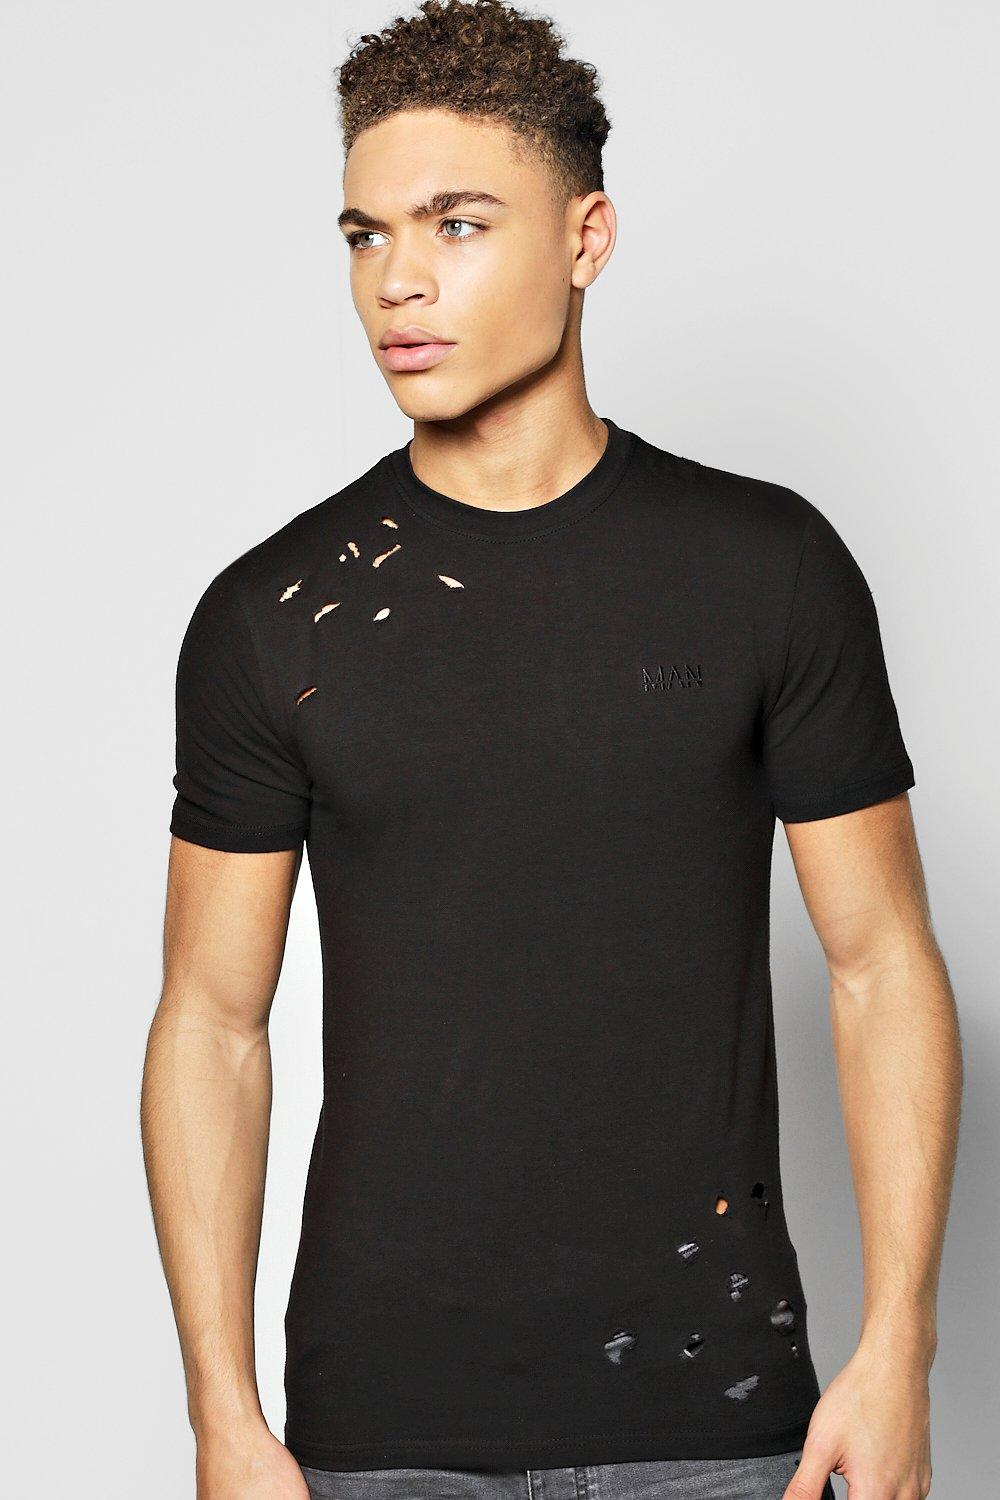 Distressed Extreme Muscle Fit MAN T-Shirt